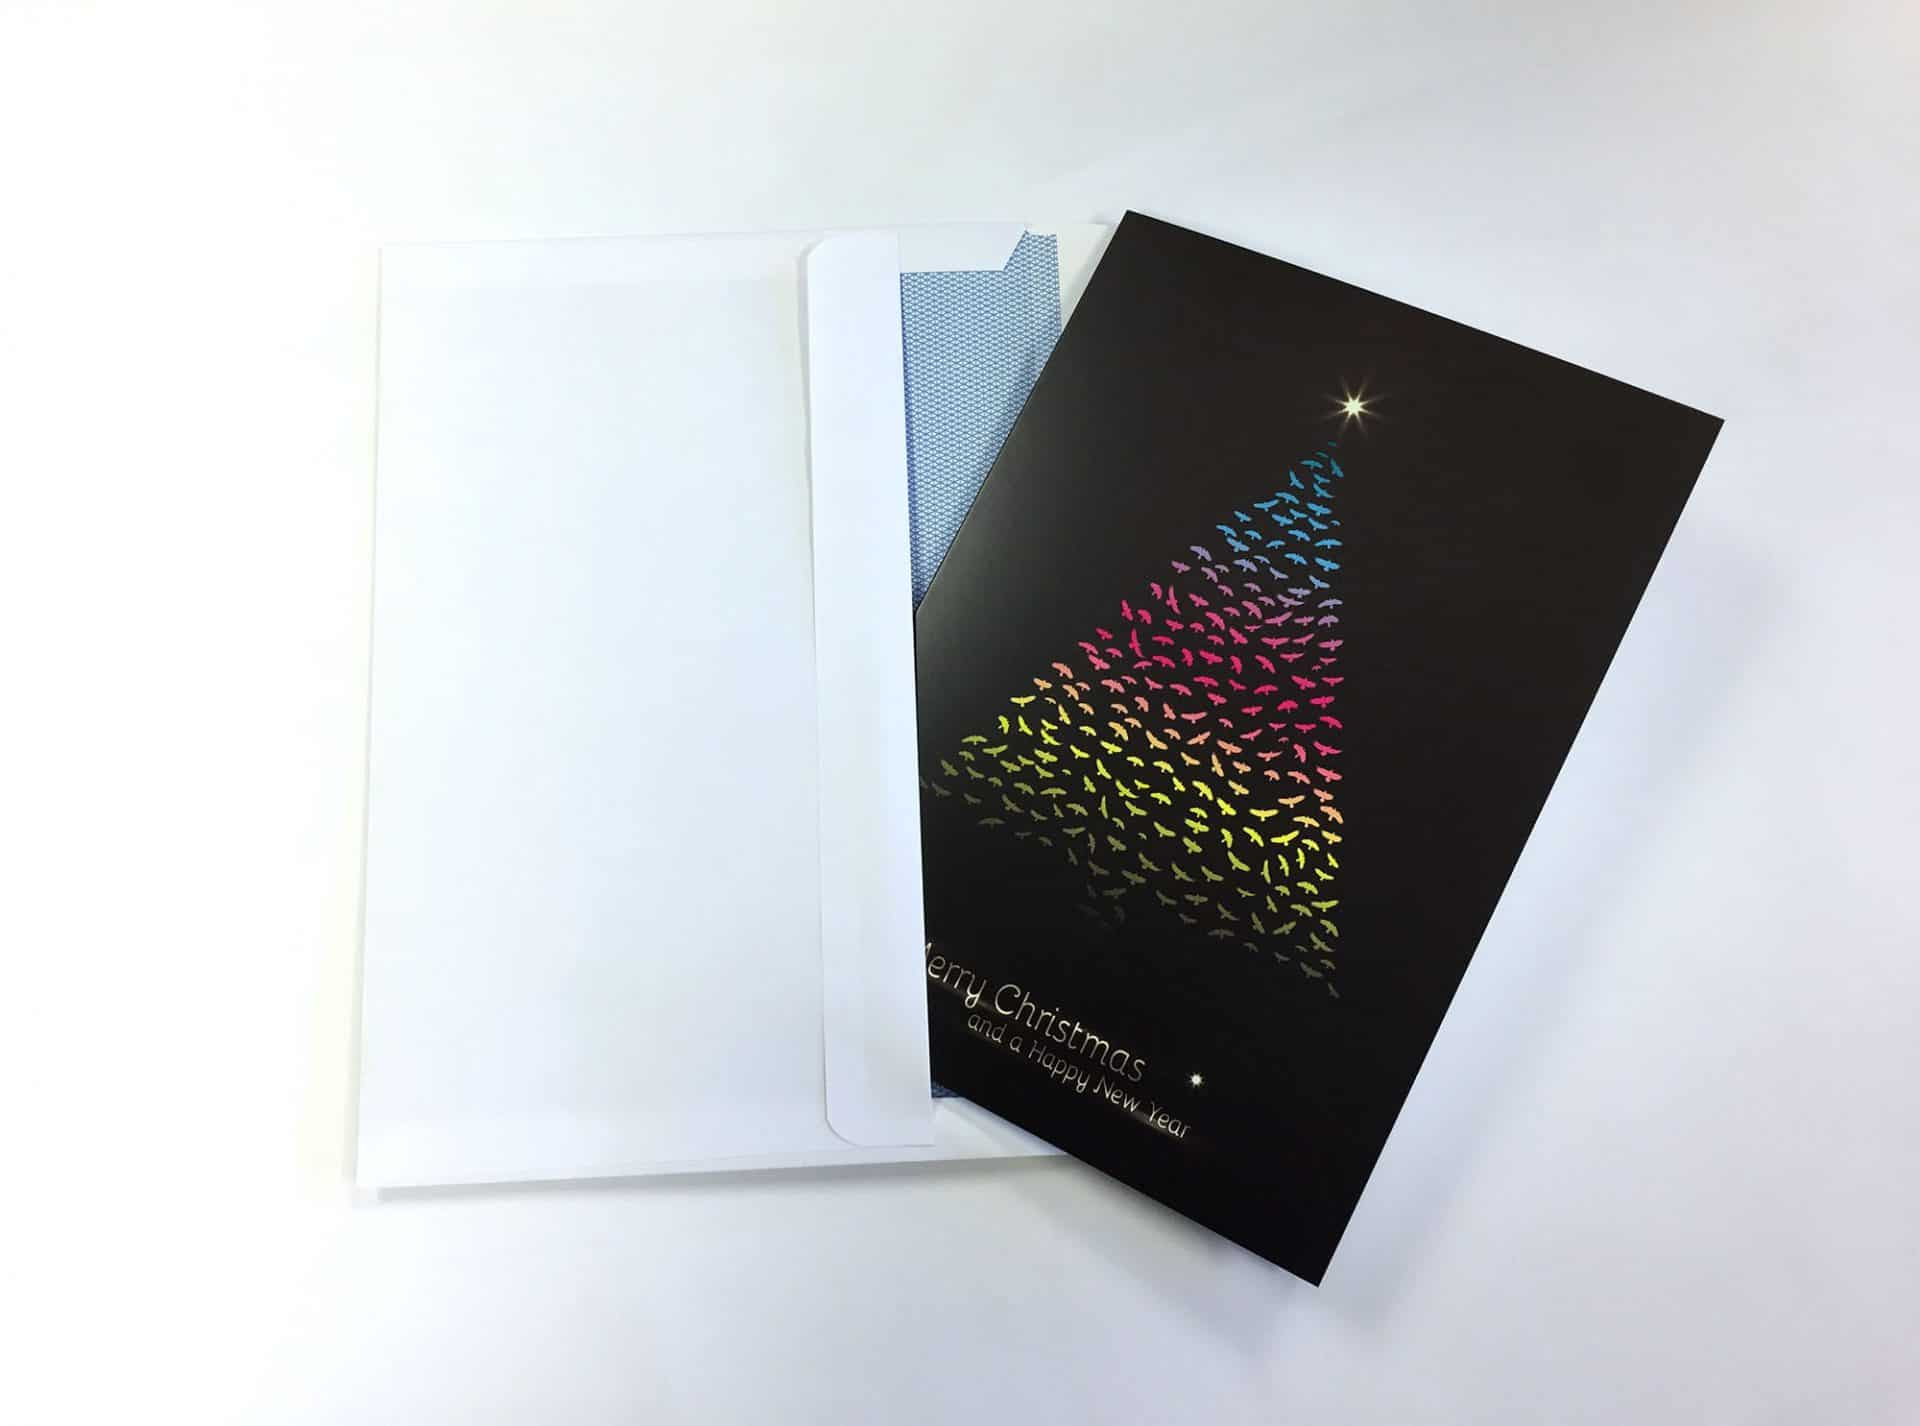 Personalised greetings cards eagle graphics printers ltd personalised greetings cards m4hsunfo